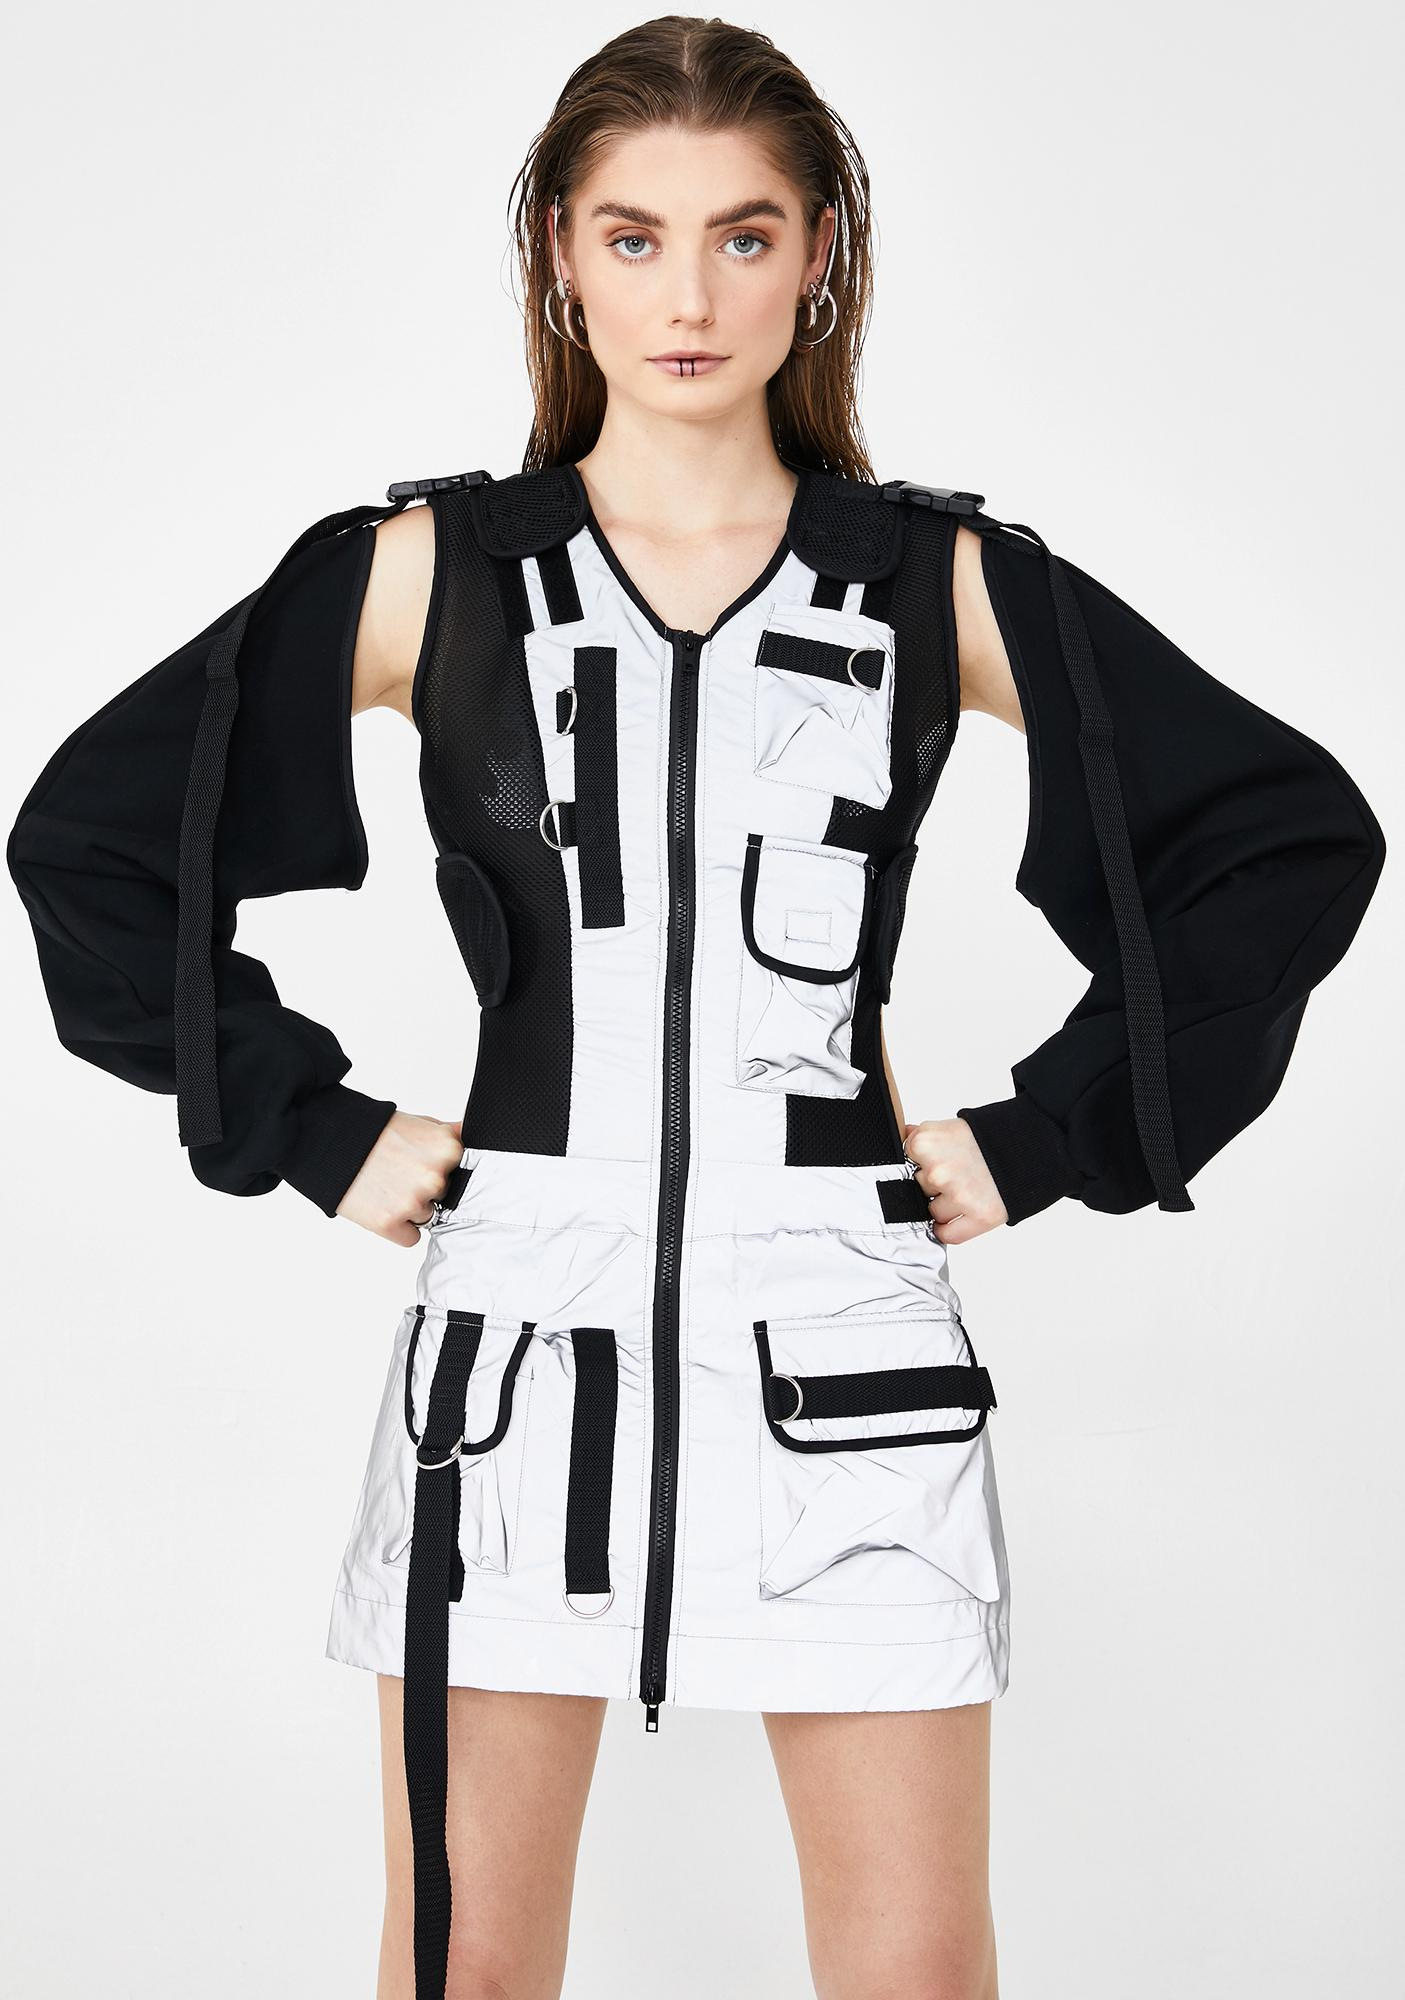 Namilia Reflective Tactical Dress With Detachable Sleeves